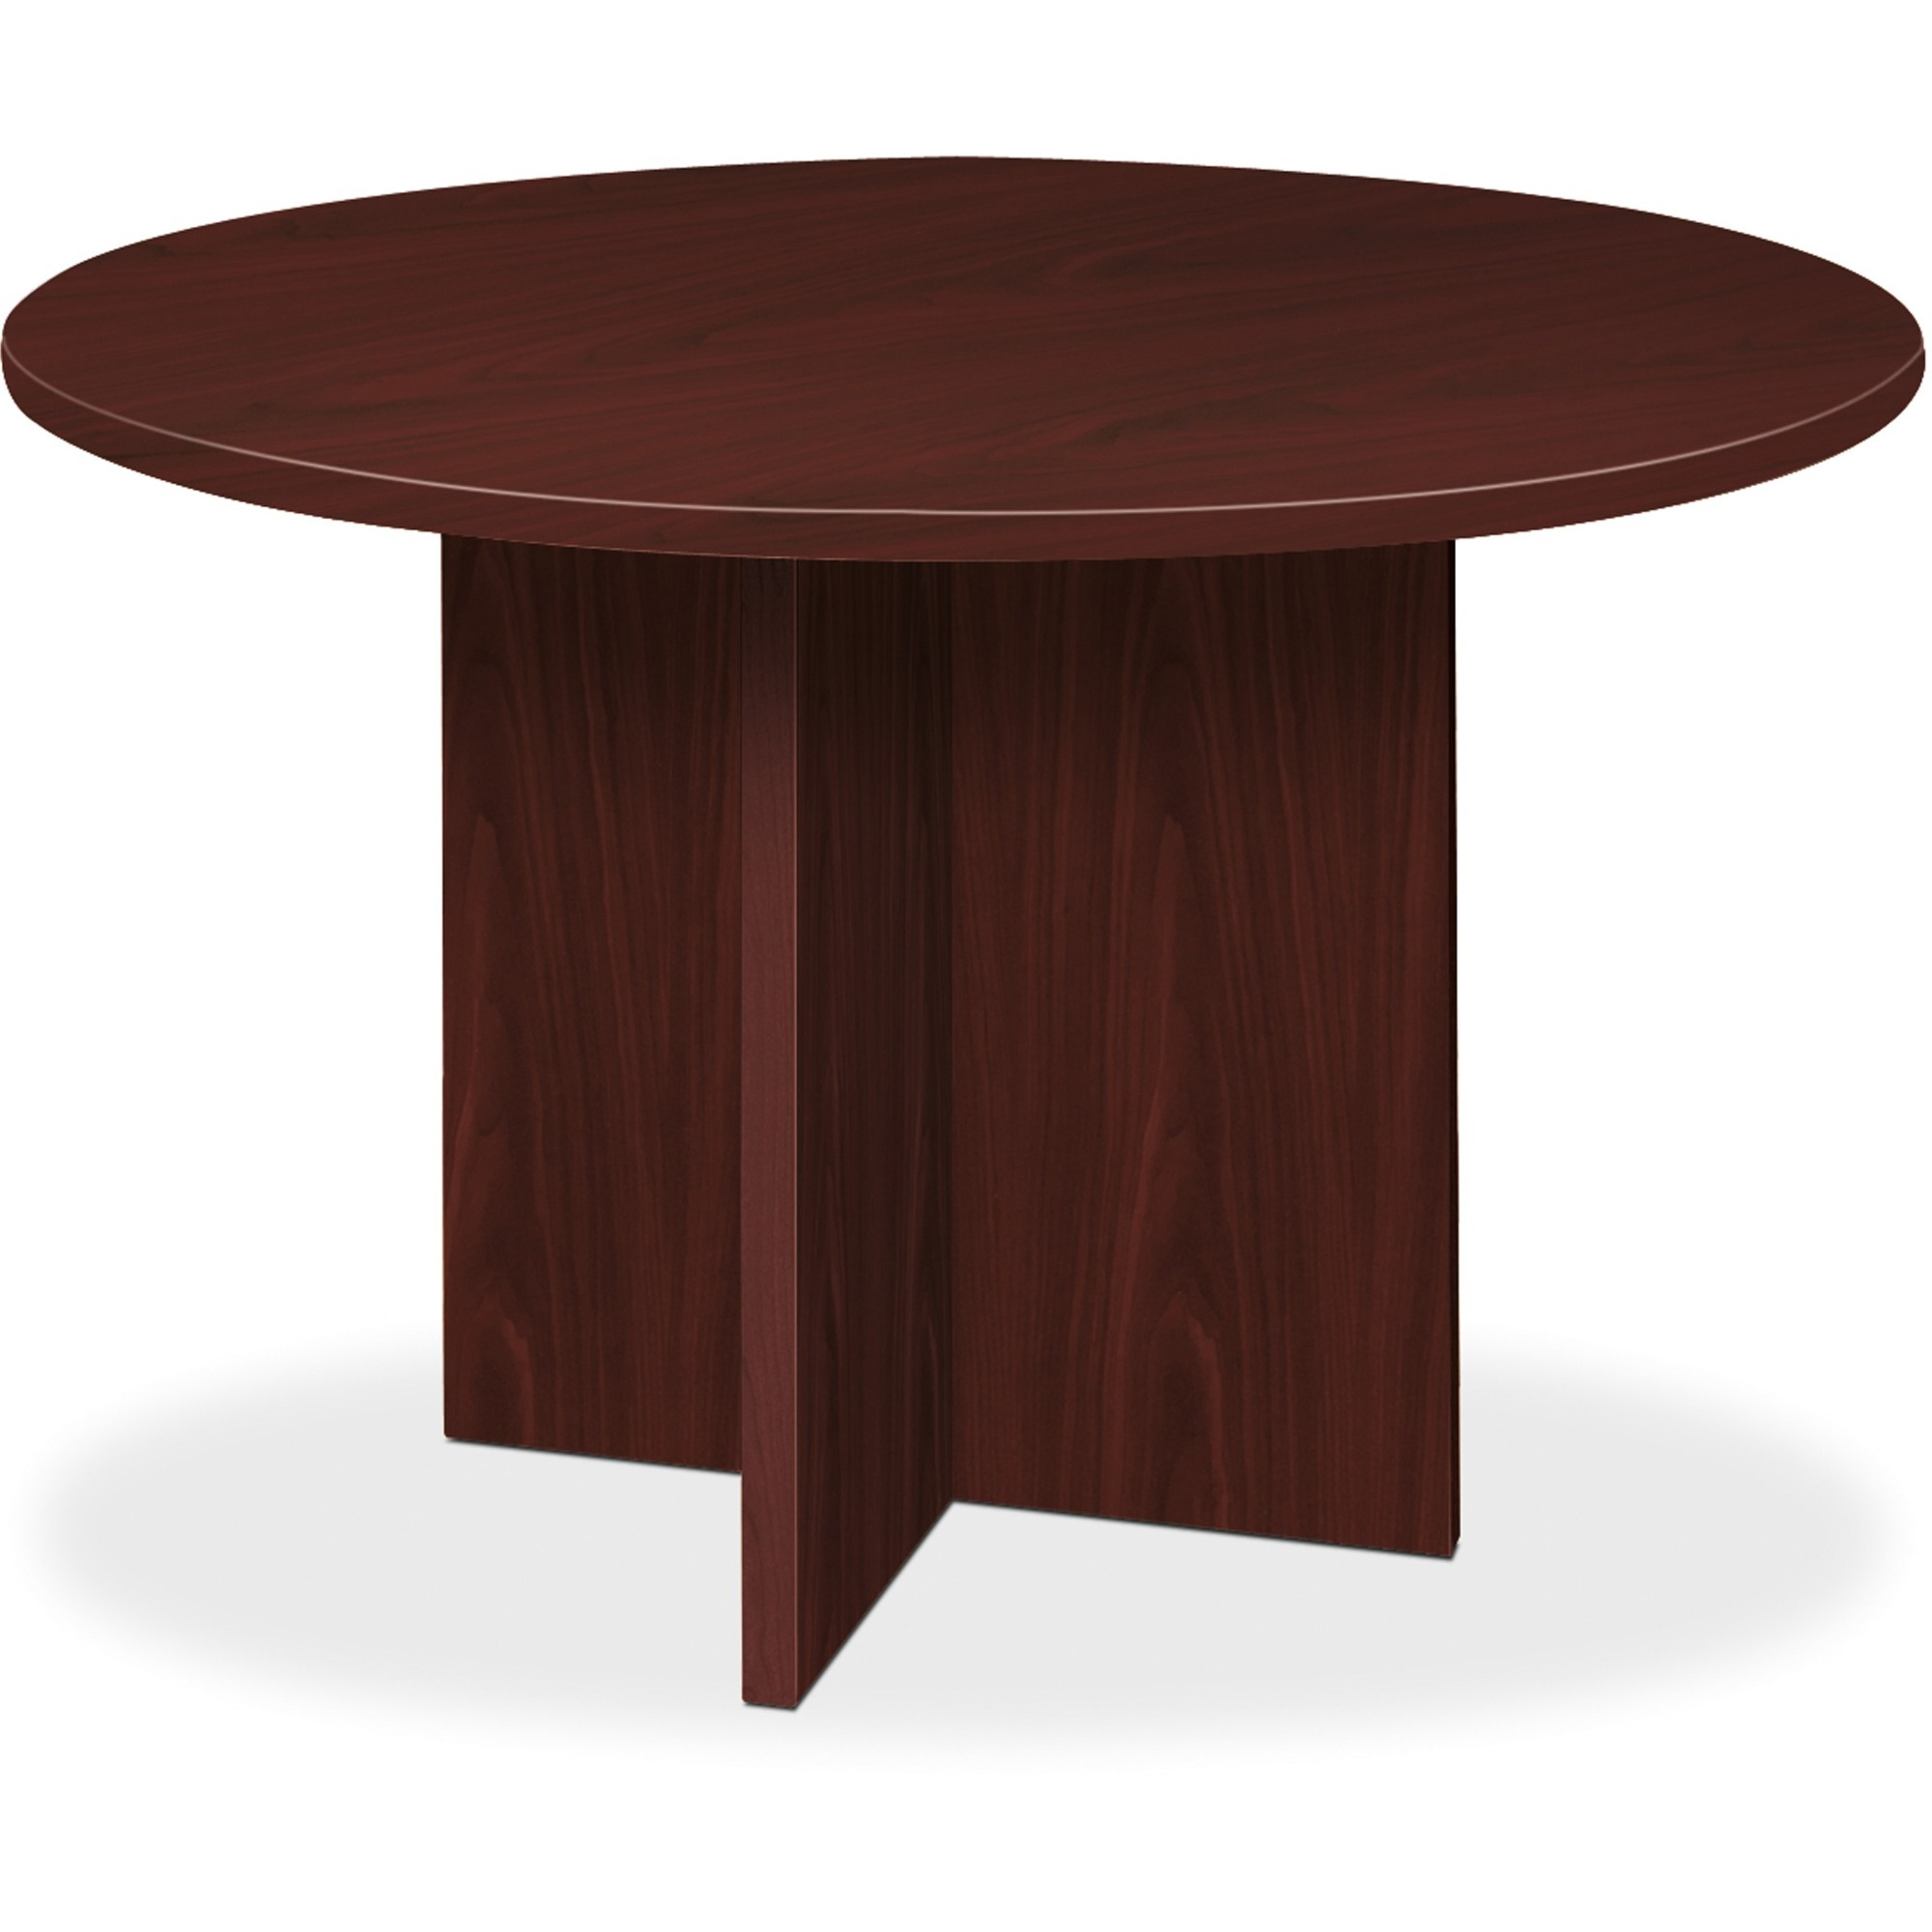 and black walnut figured with on dining tri tops desk legs edge wood tables conference steel room slab live table